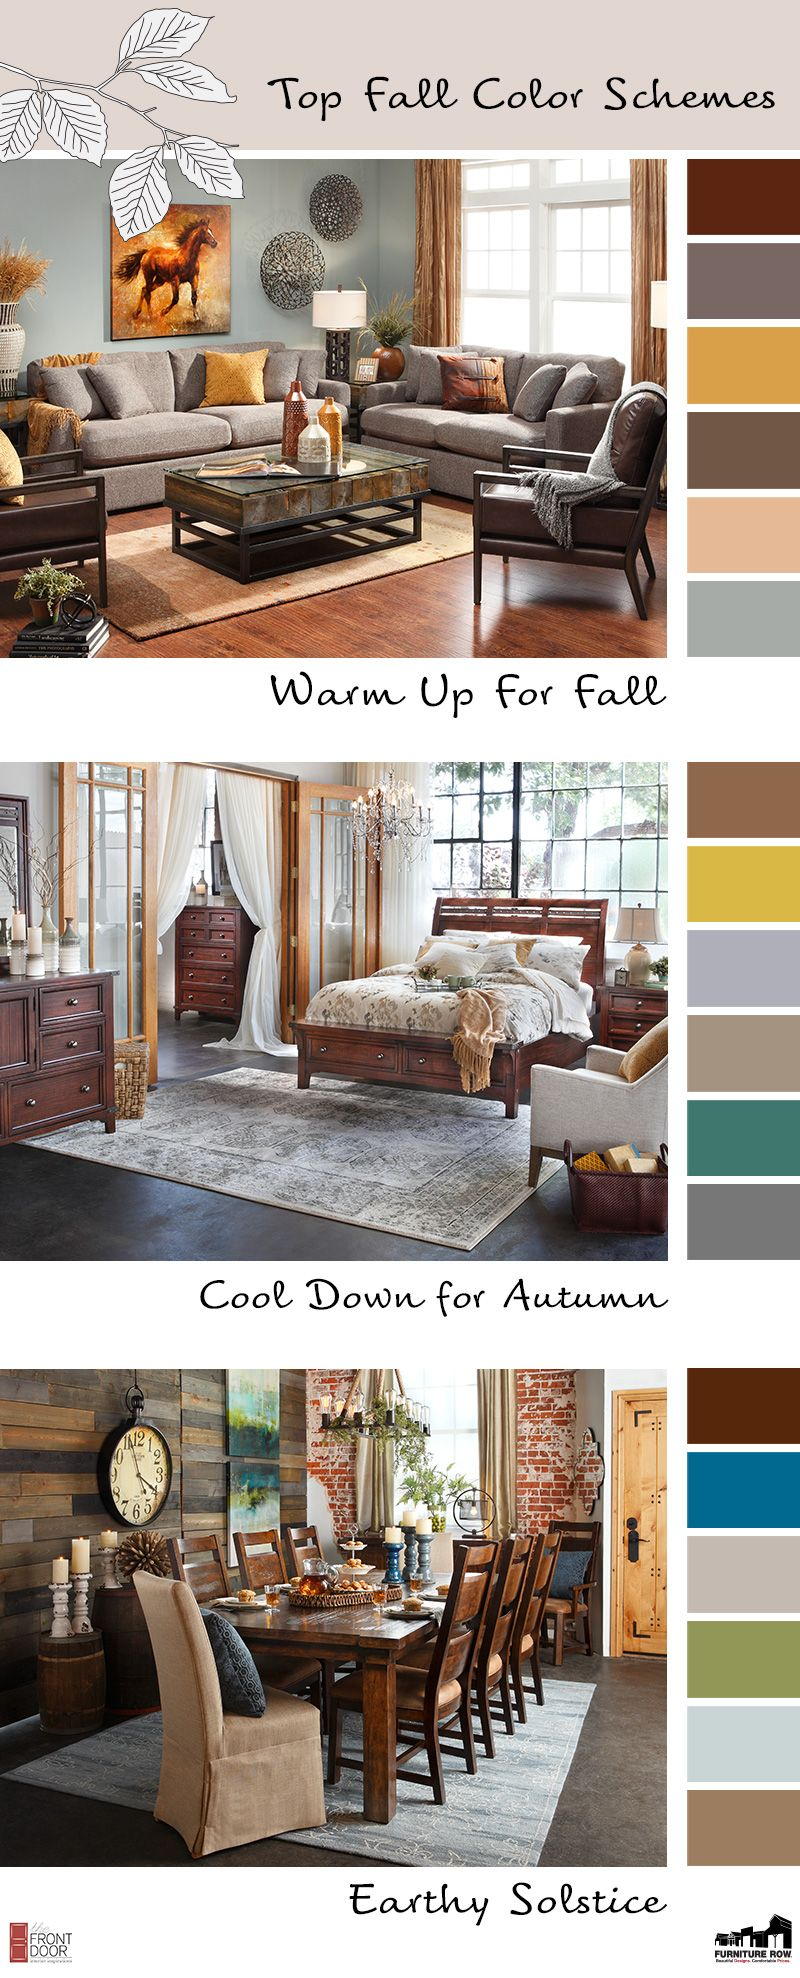 top fall color schemes for interior decorating - the front